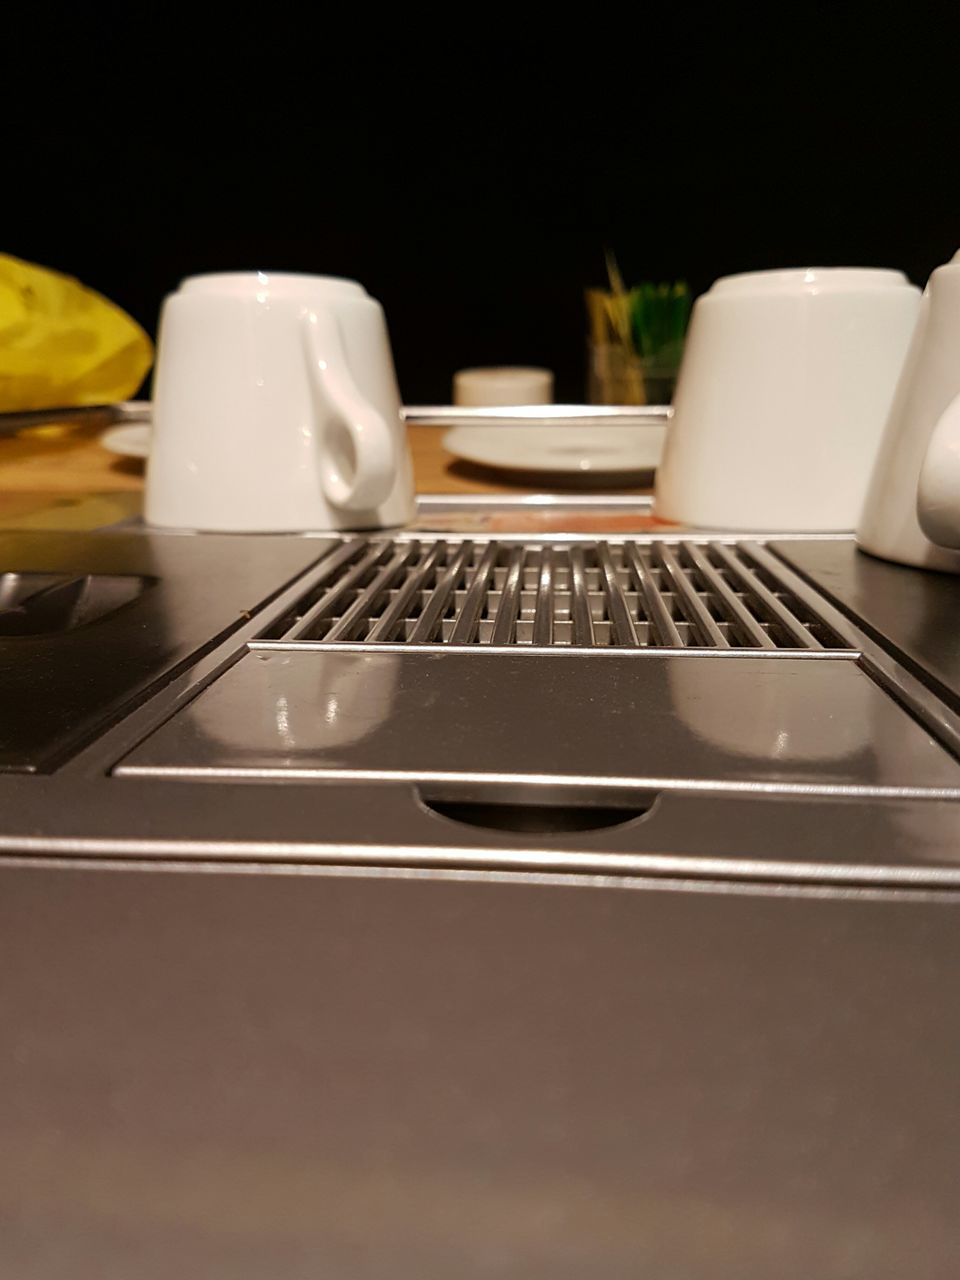 indoors, no people, table, wireless technology, fork, technology, plate, close-up, keyboard, day